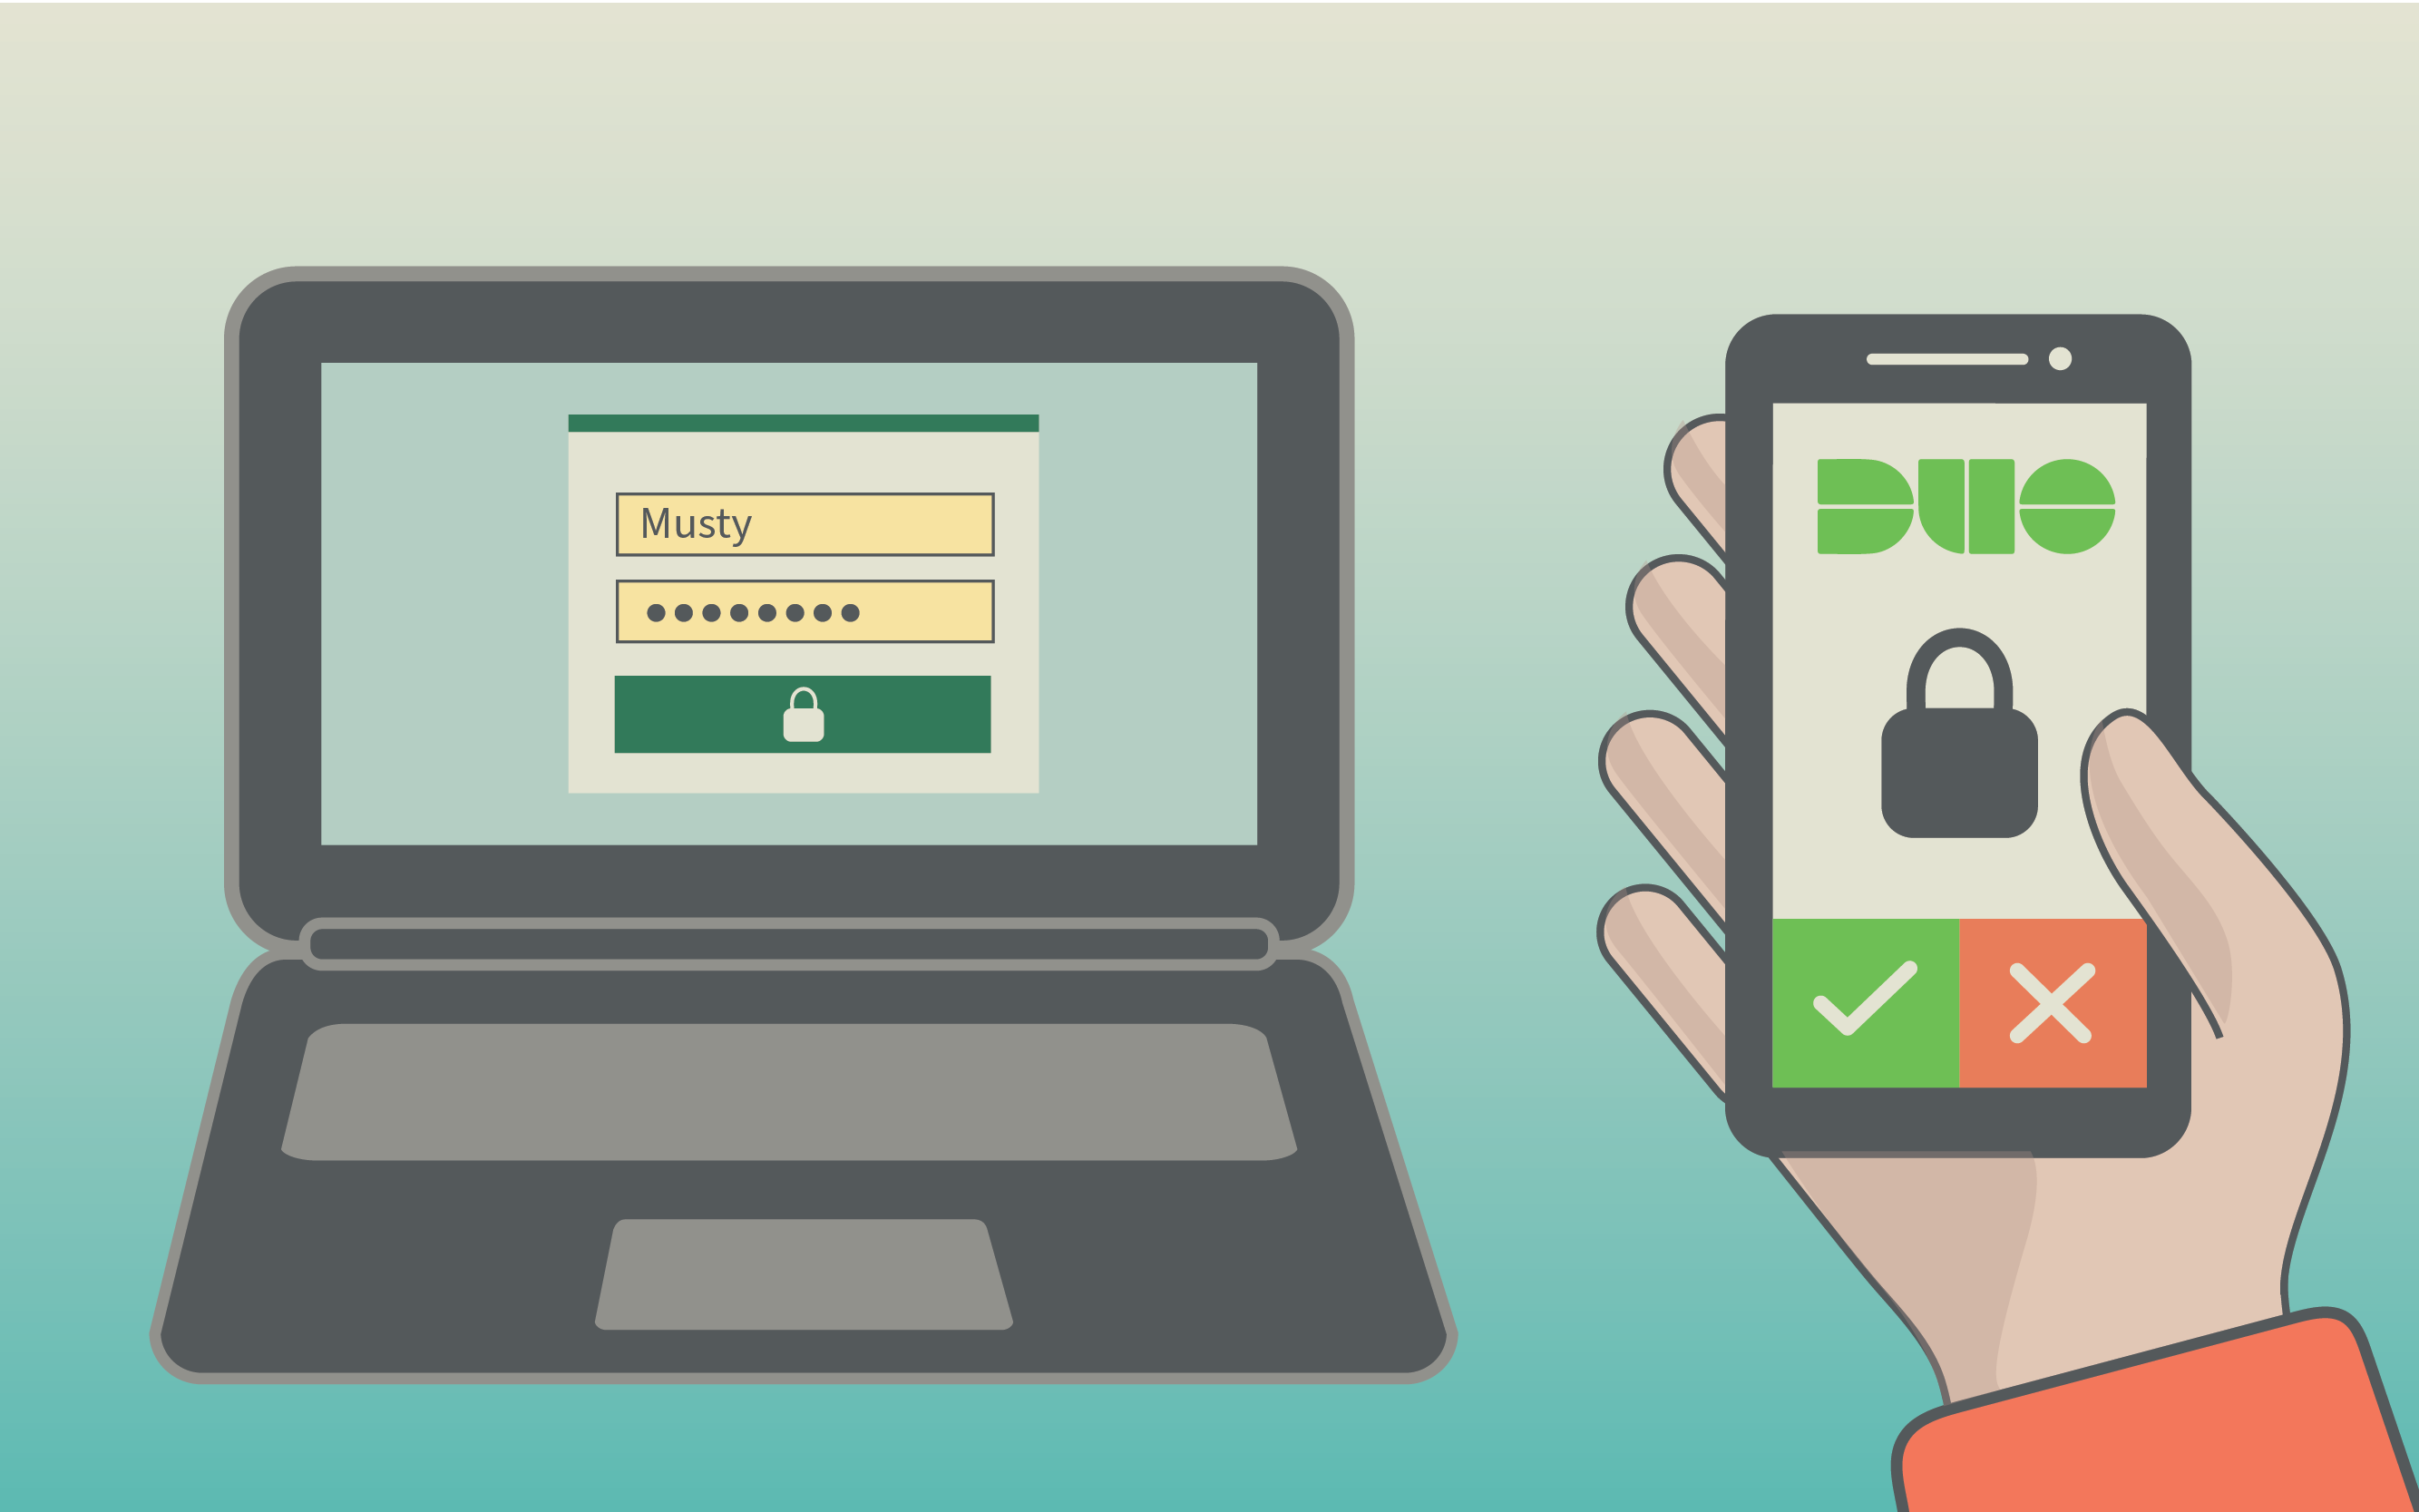 Illustration of laptop computer with someone holding a phone with Duo multi-factor authentication